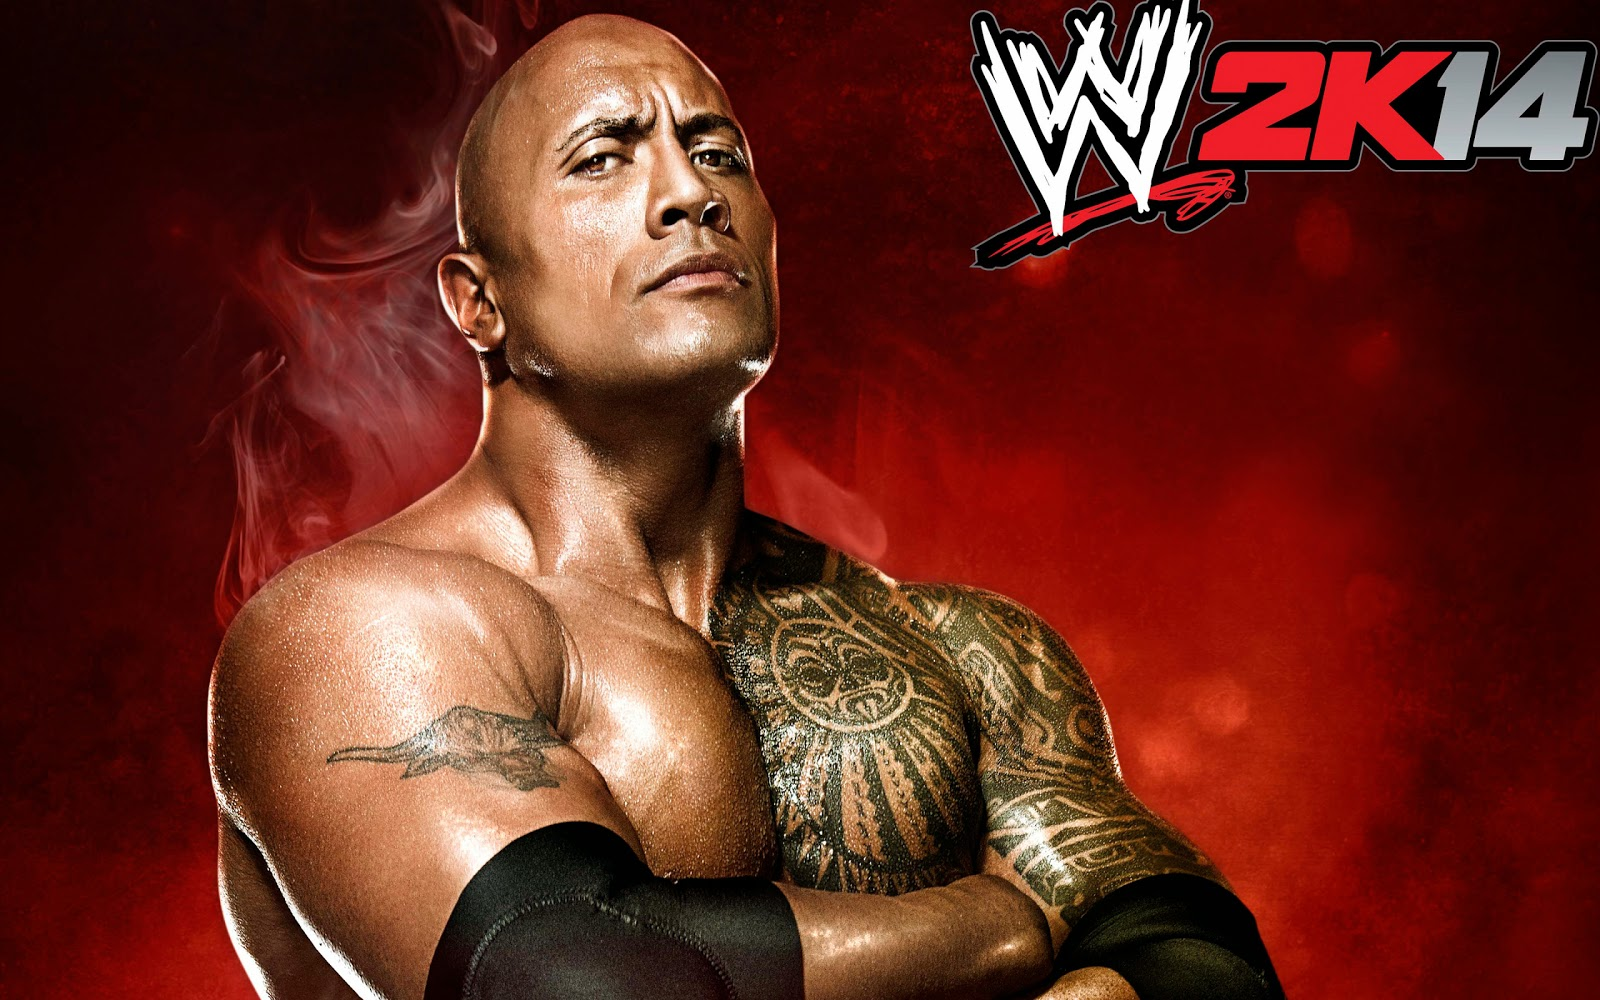 Images Of The Rock Wwe: WWE Superstars And All WWE 2014 Wrestlers HD Wallpapers